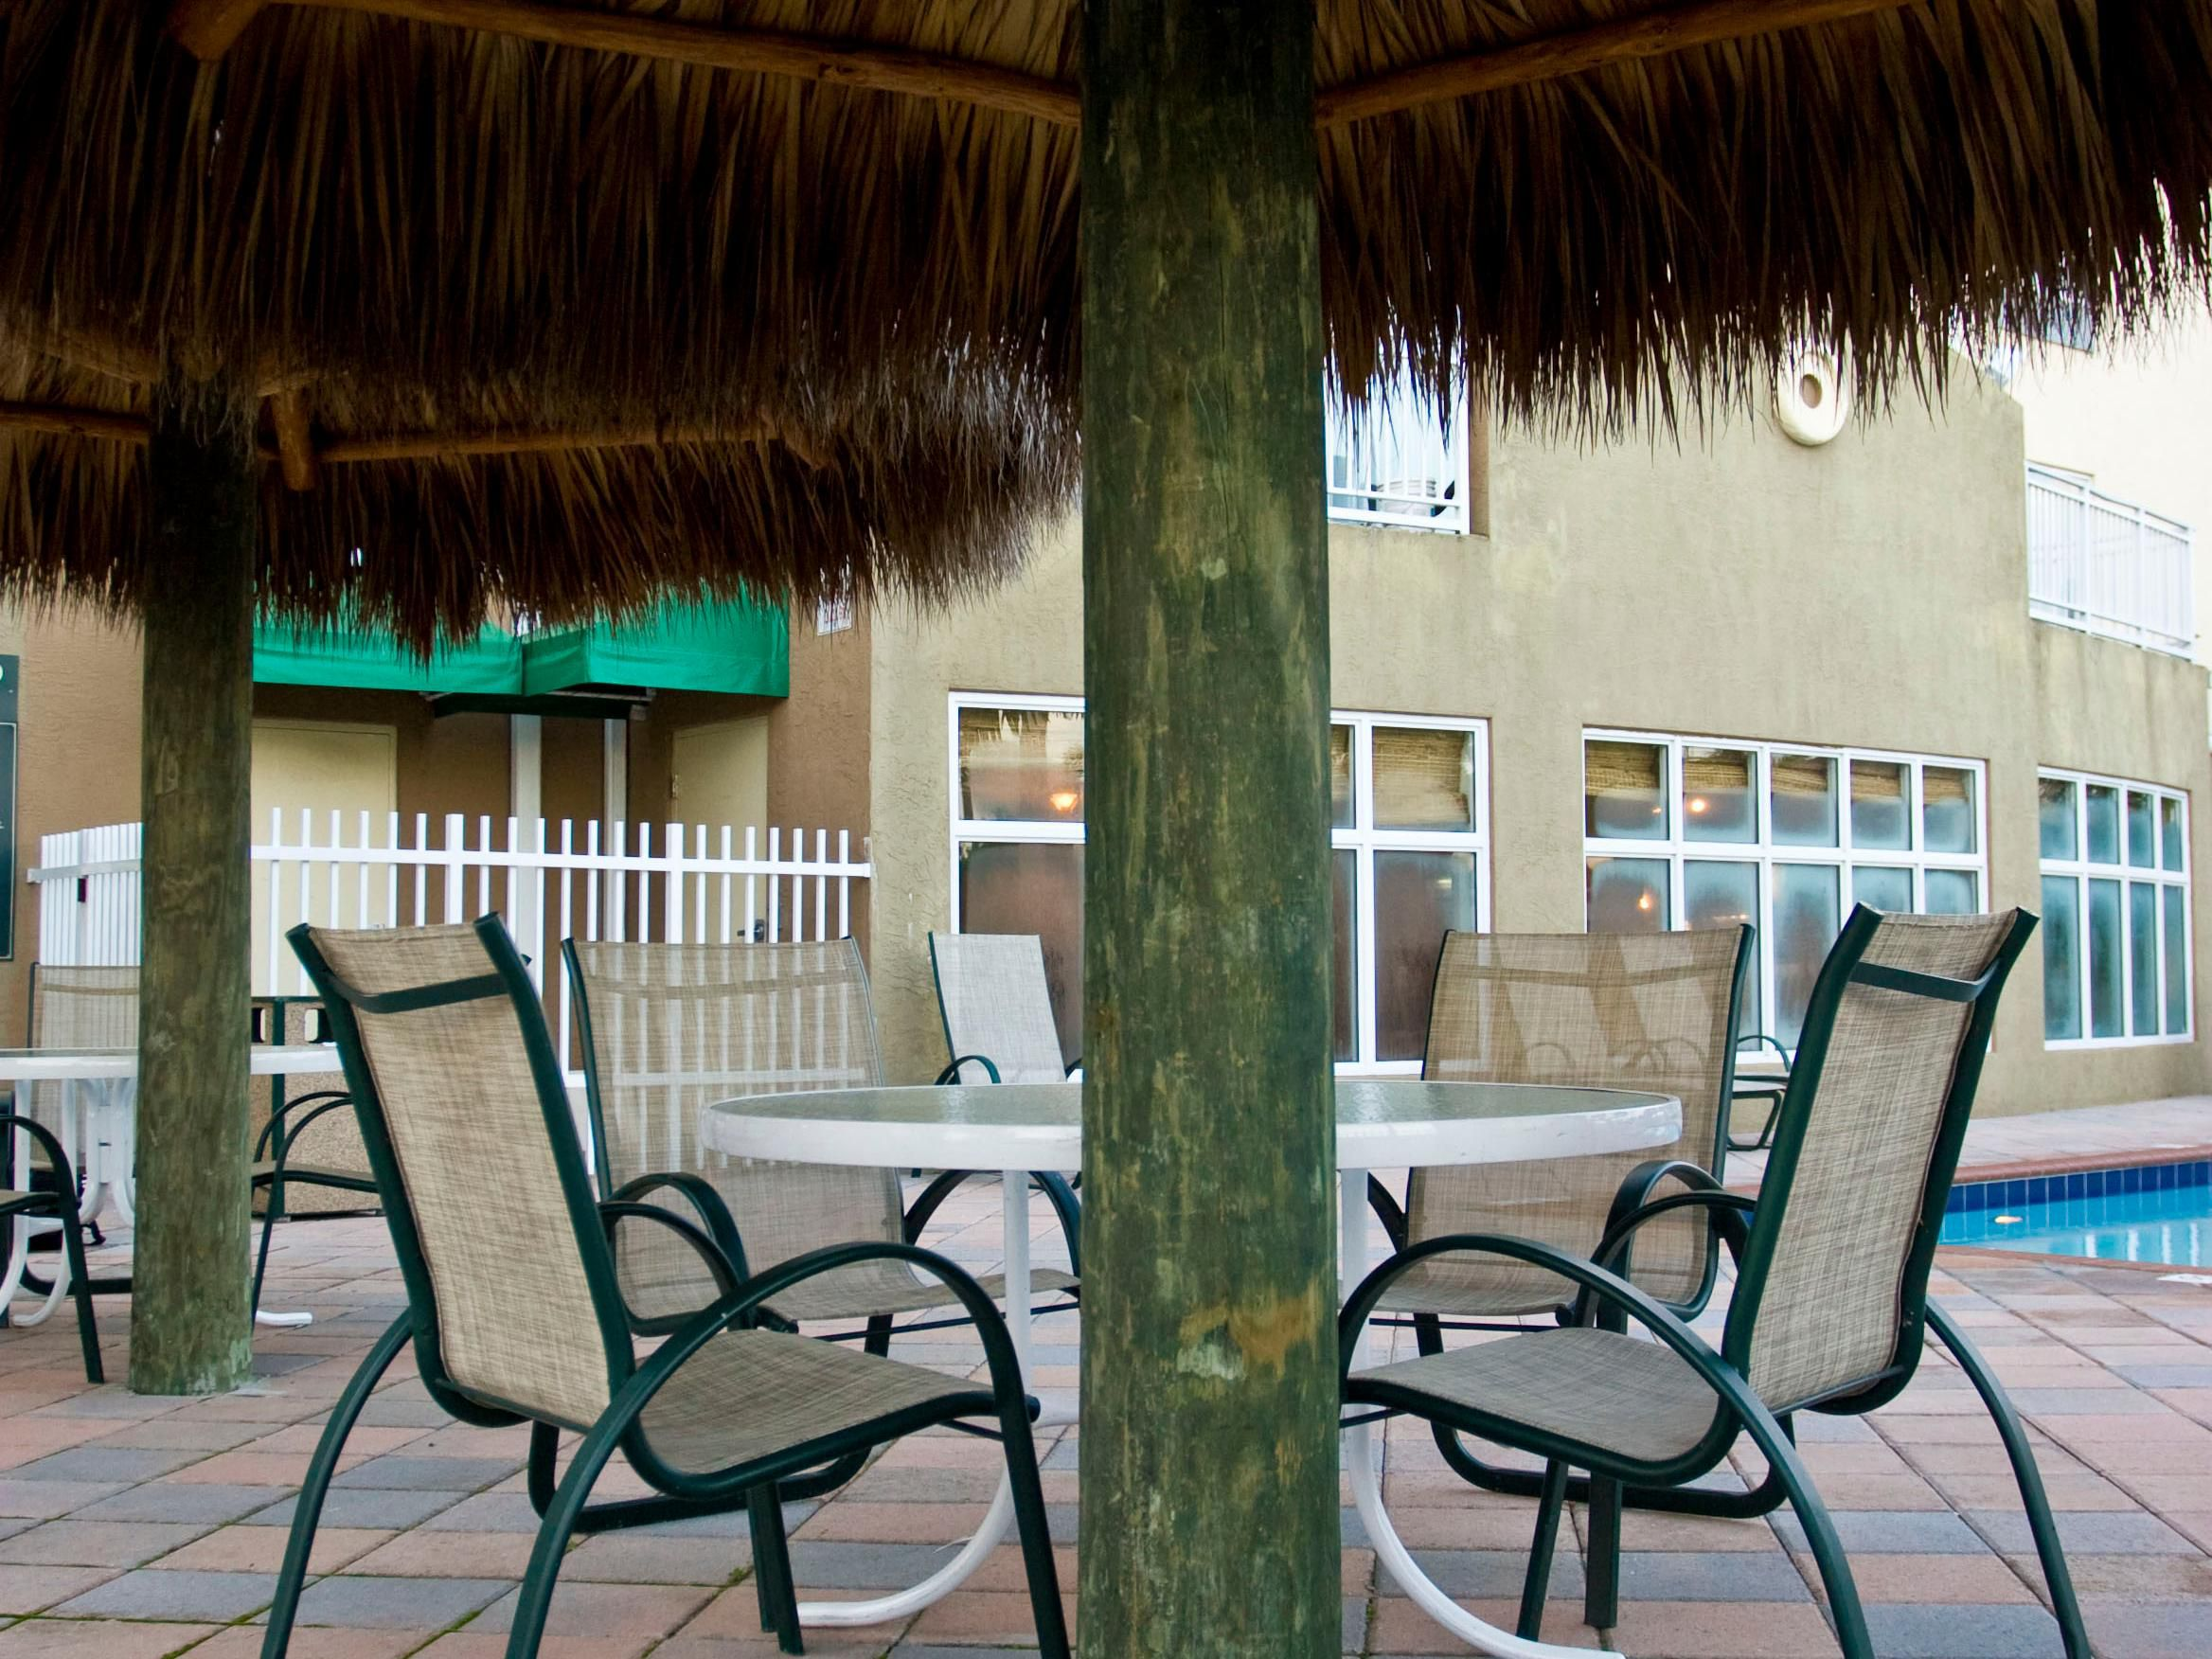 Meet with friends on our pool-side patio.